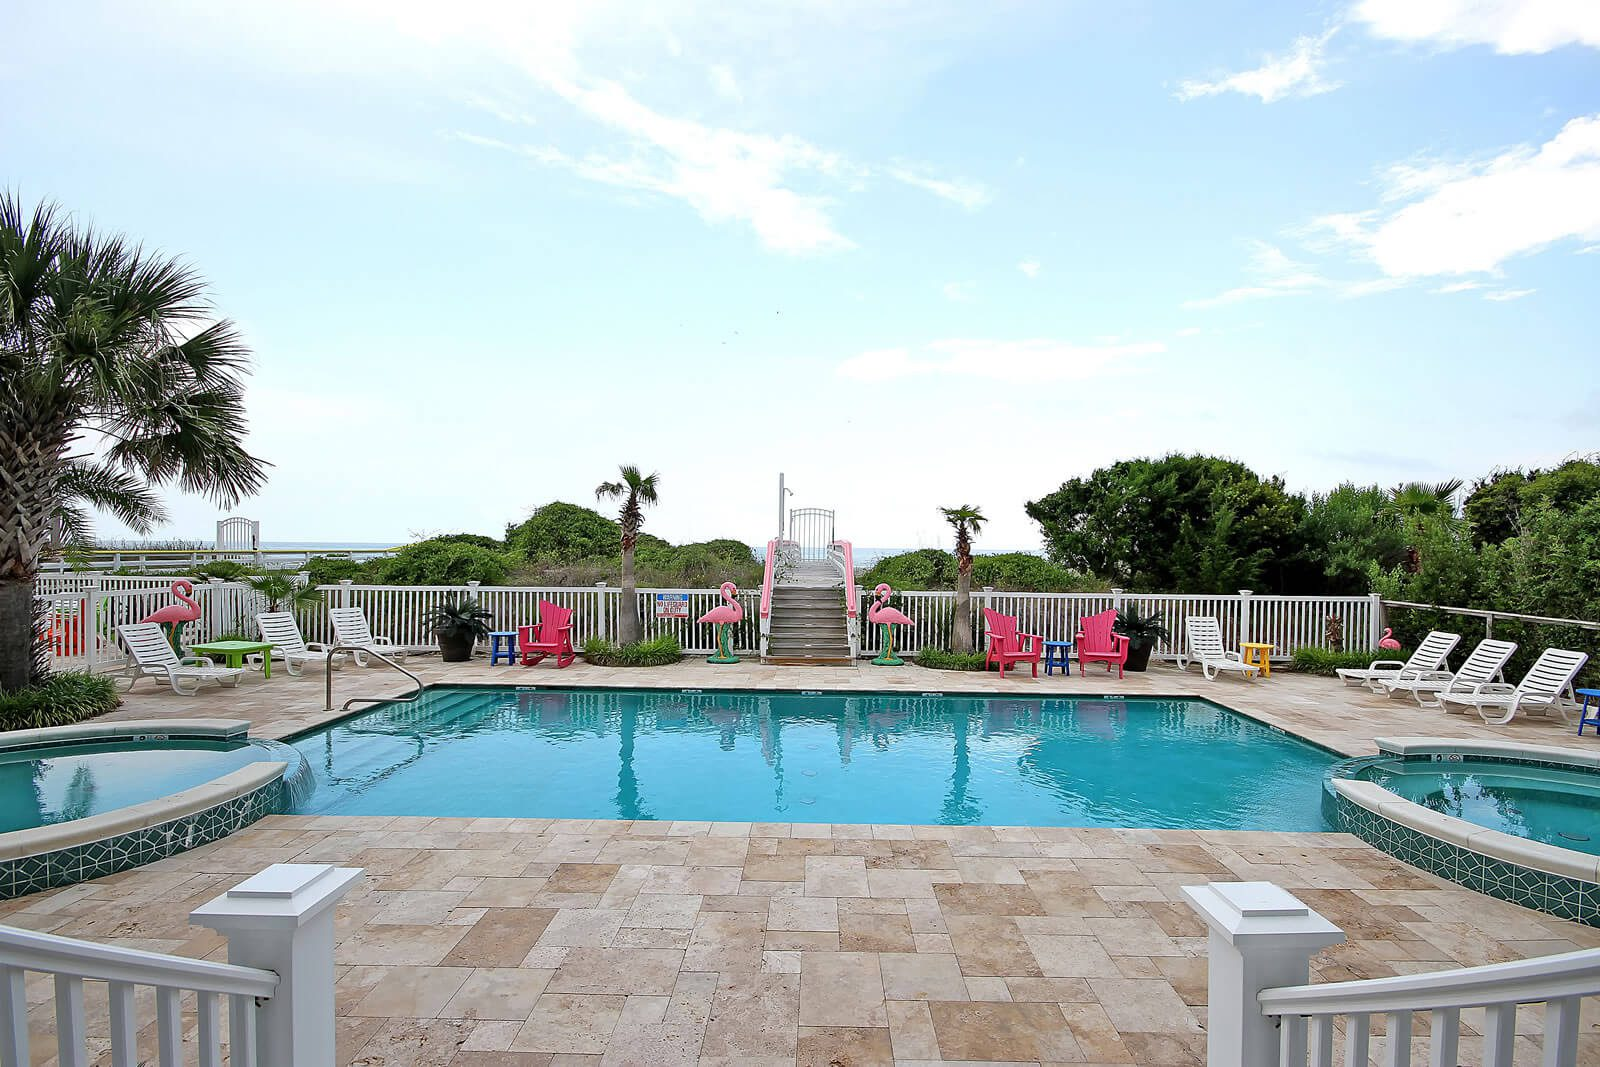 Casa Flamingo Private Pool with an Ocean View - Isle of Palms, SC